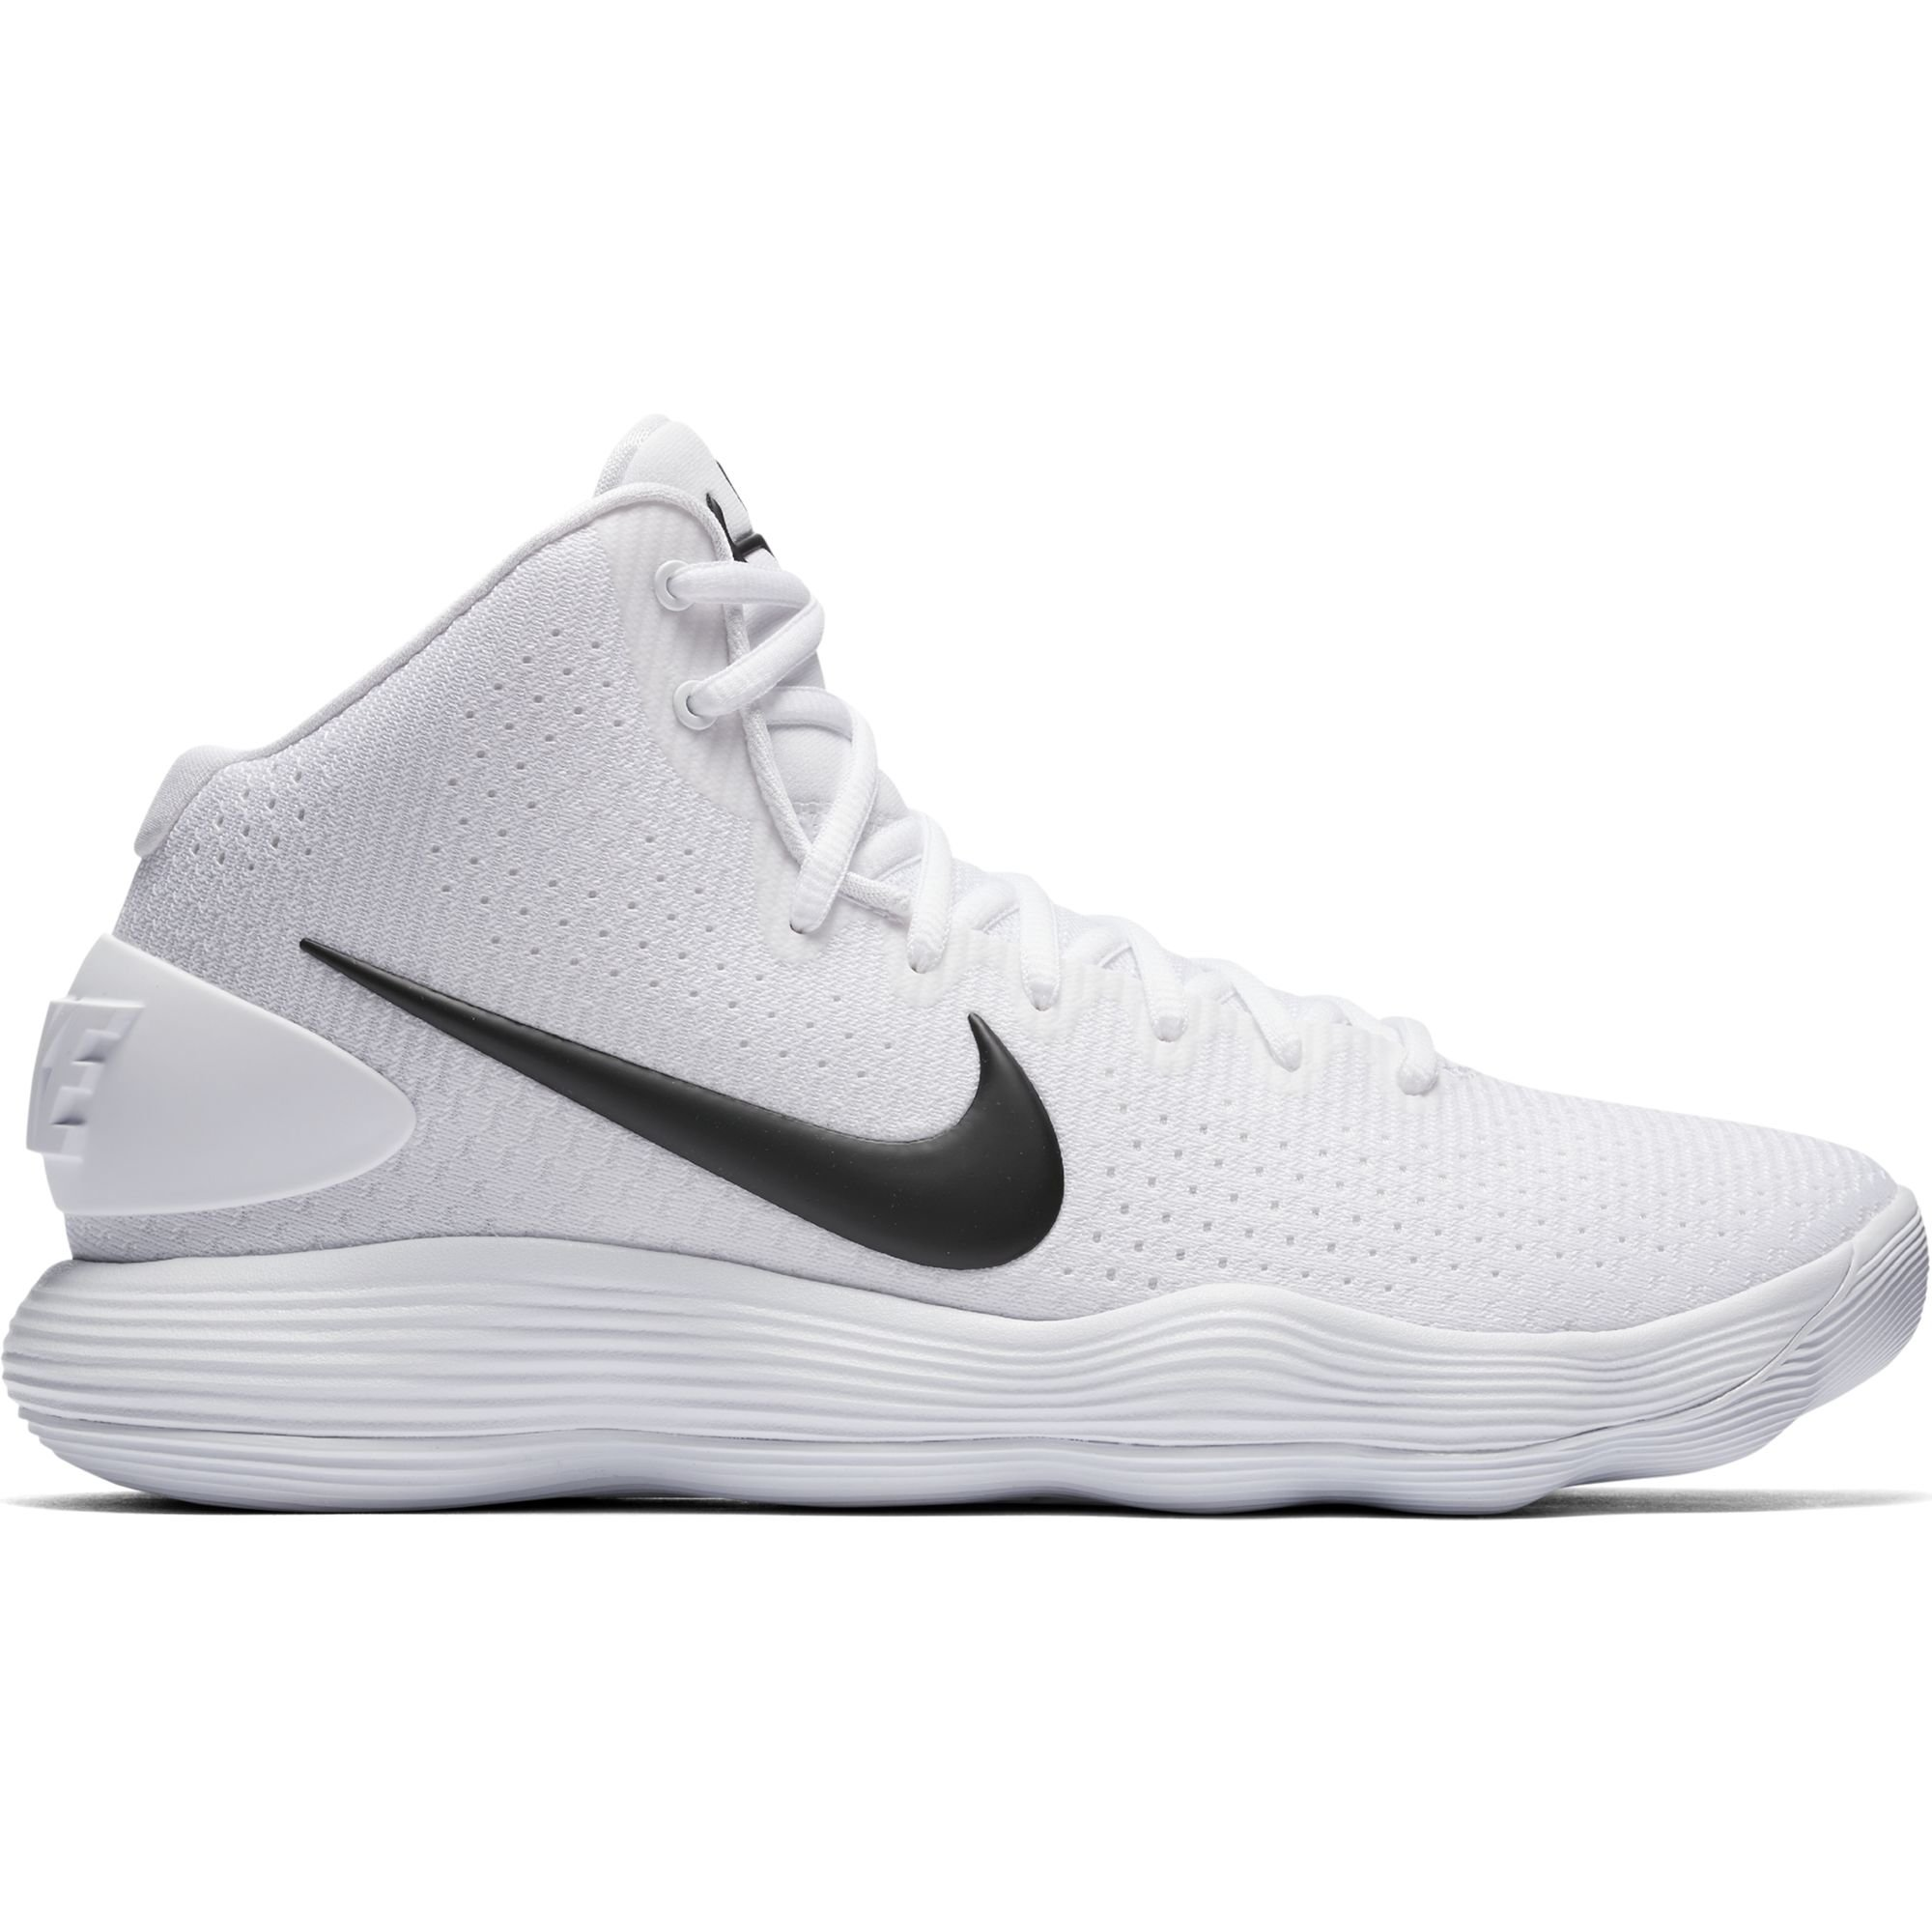 NIKE Men's Hyperdunk 2017 TB Basketball Shoe White/Black Size 8 M US